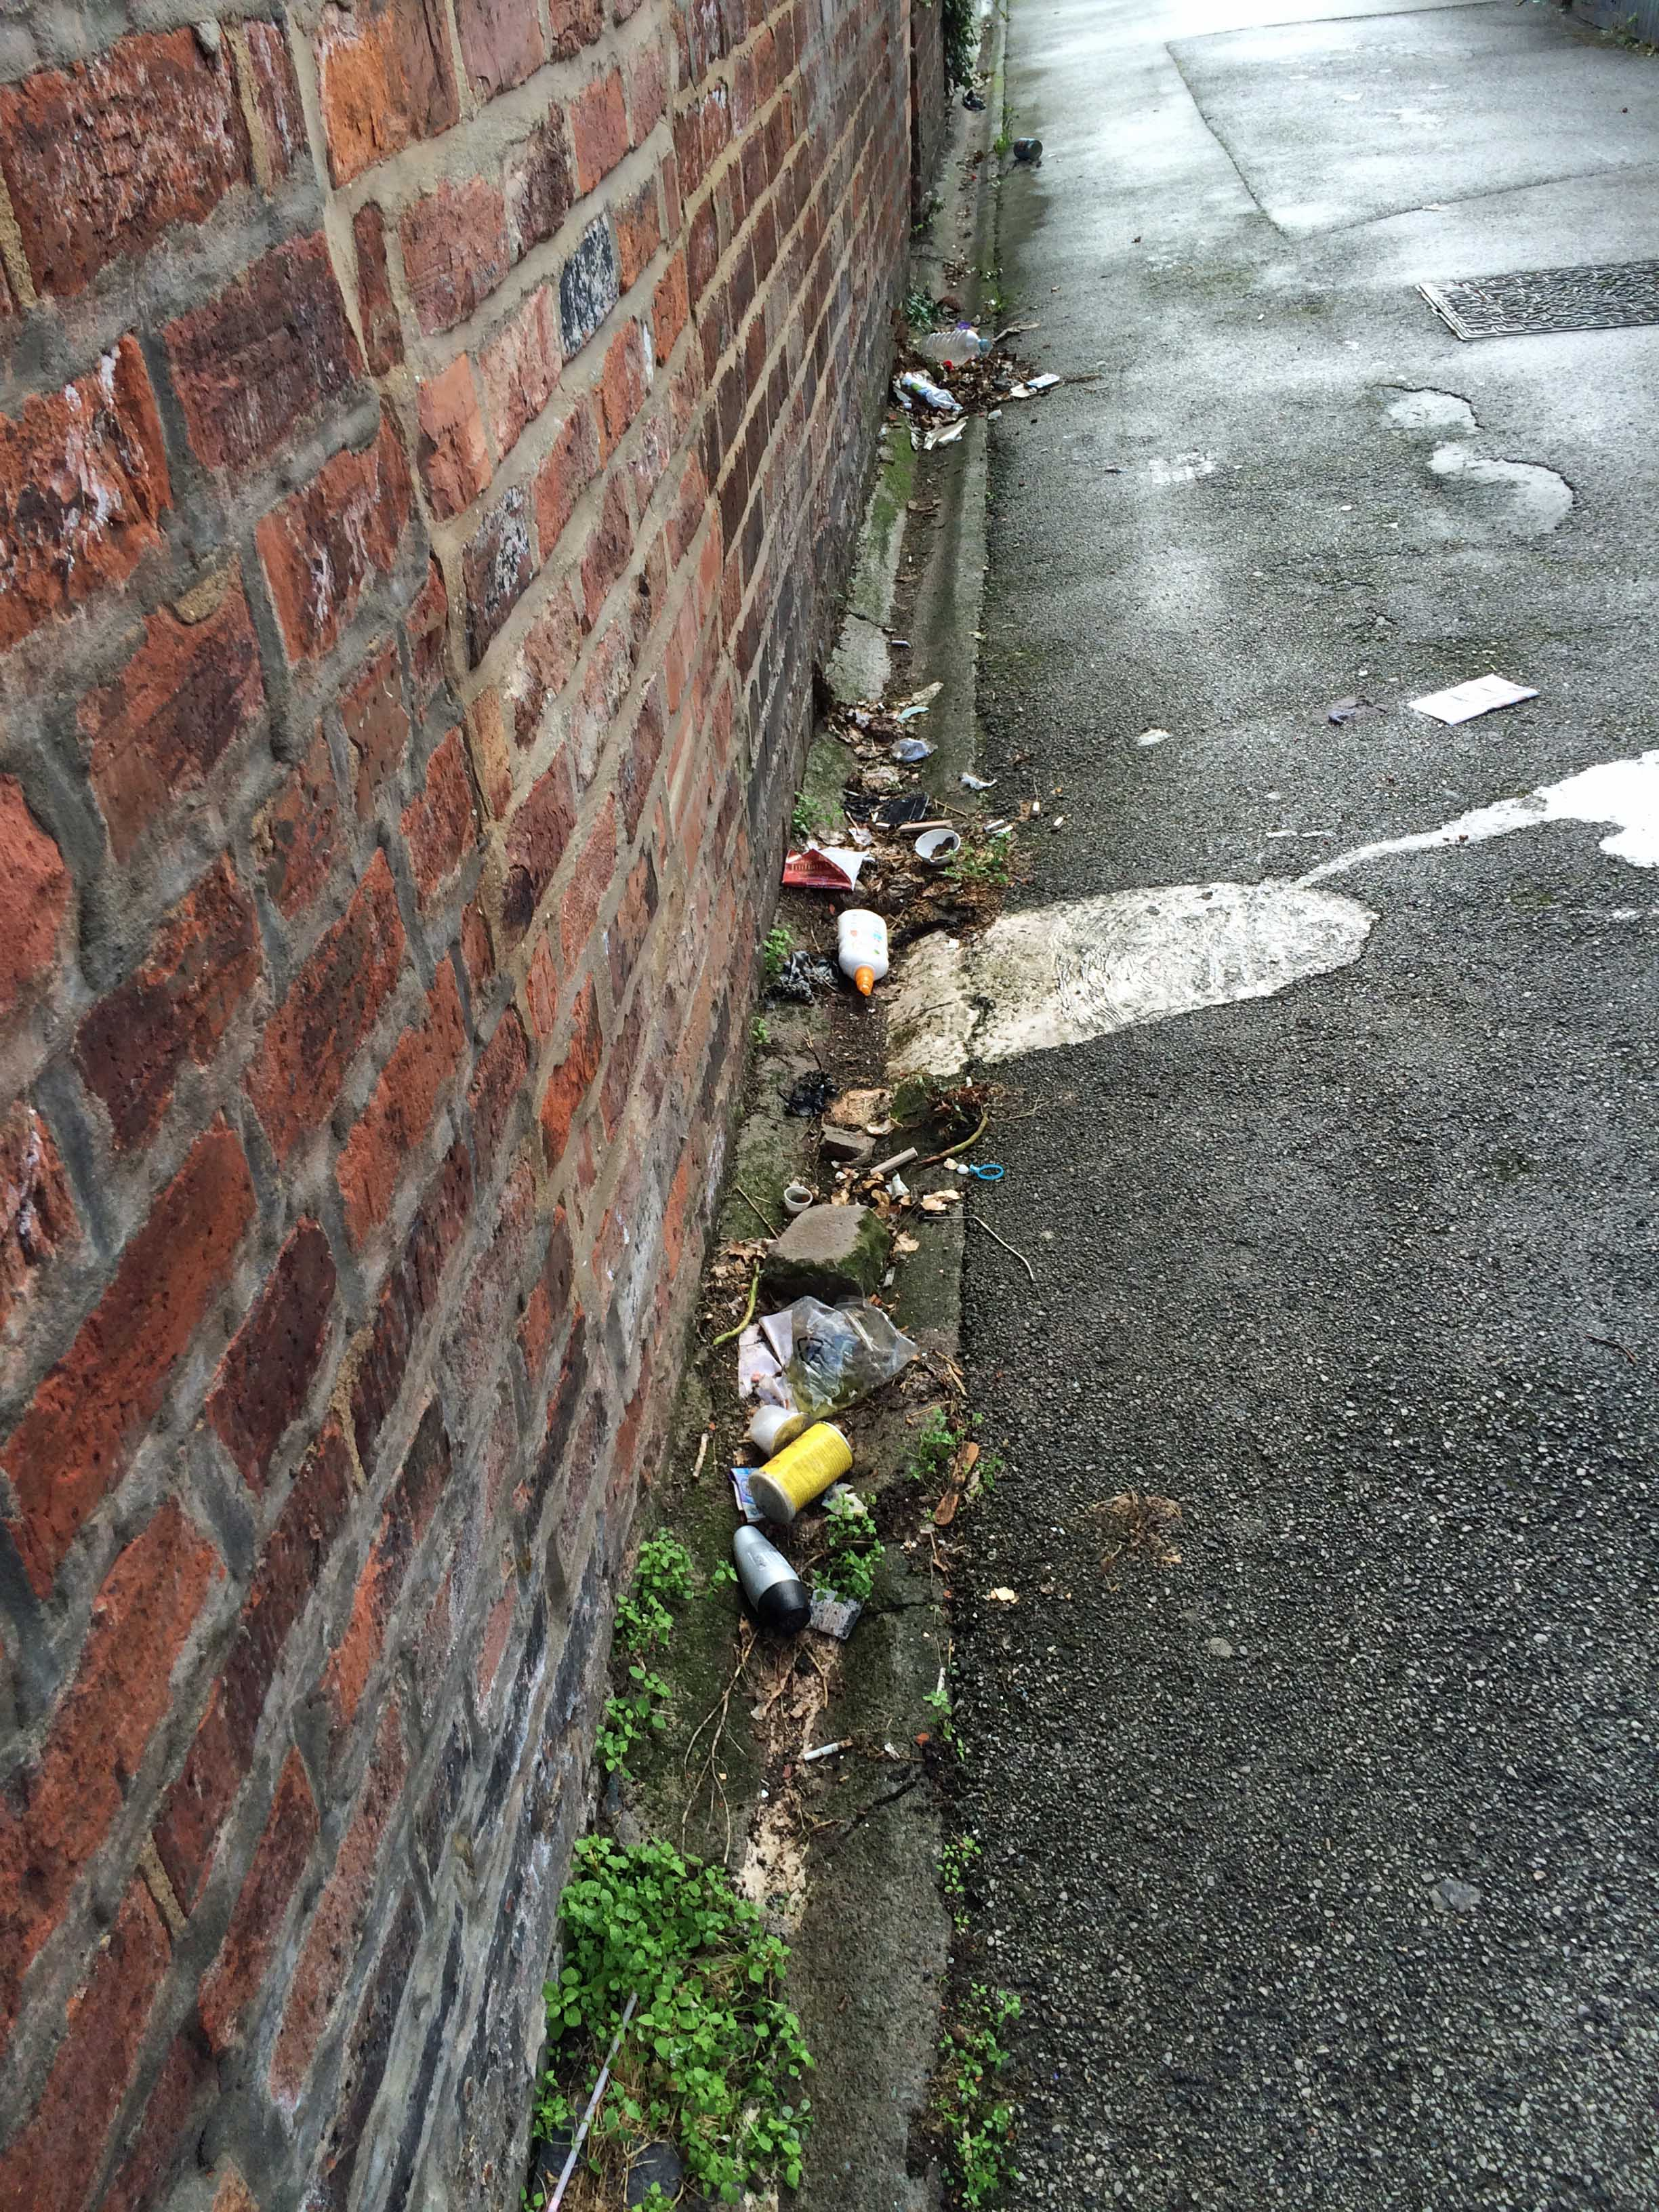 Litter in Gladstone Street/Beaconsfield Street area back lanes